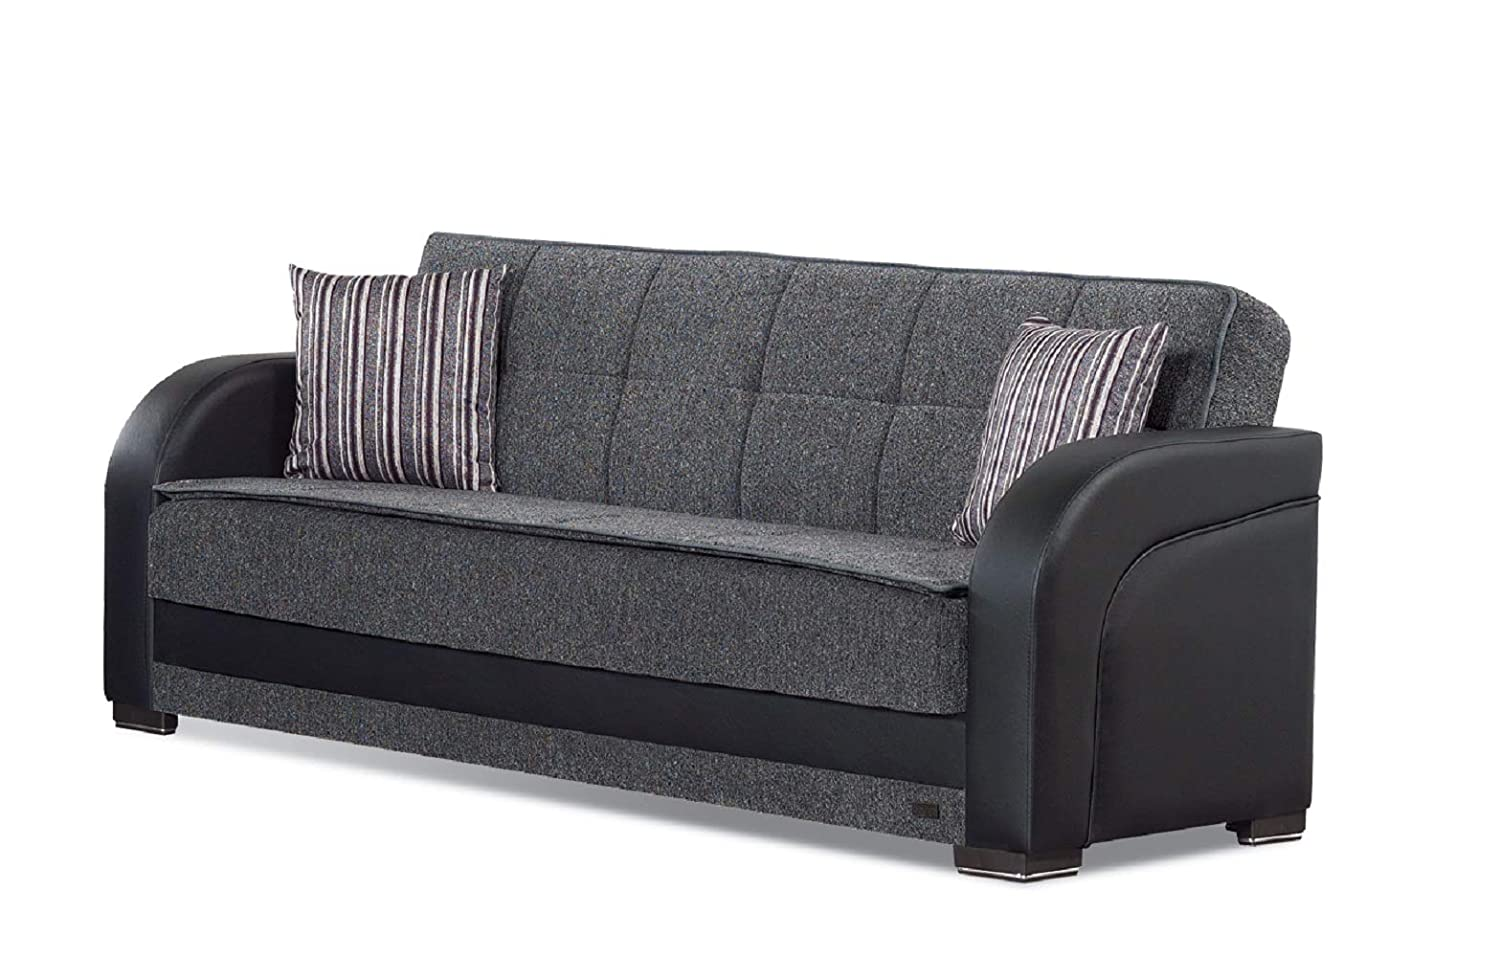 BEYAN Oklahoma Collection Folding Sofa Bed / Sleeper with Storage Space, Includes 2 Pillows, Gray